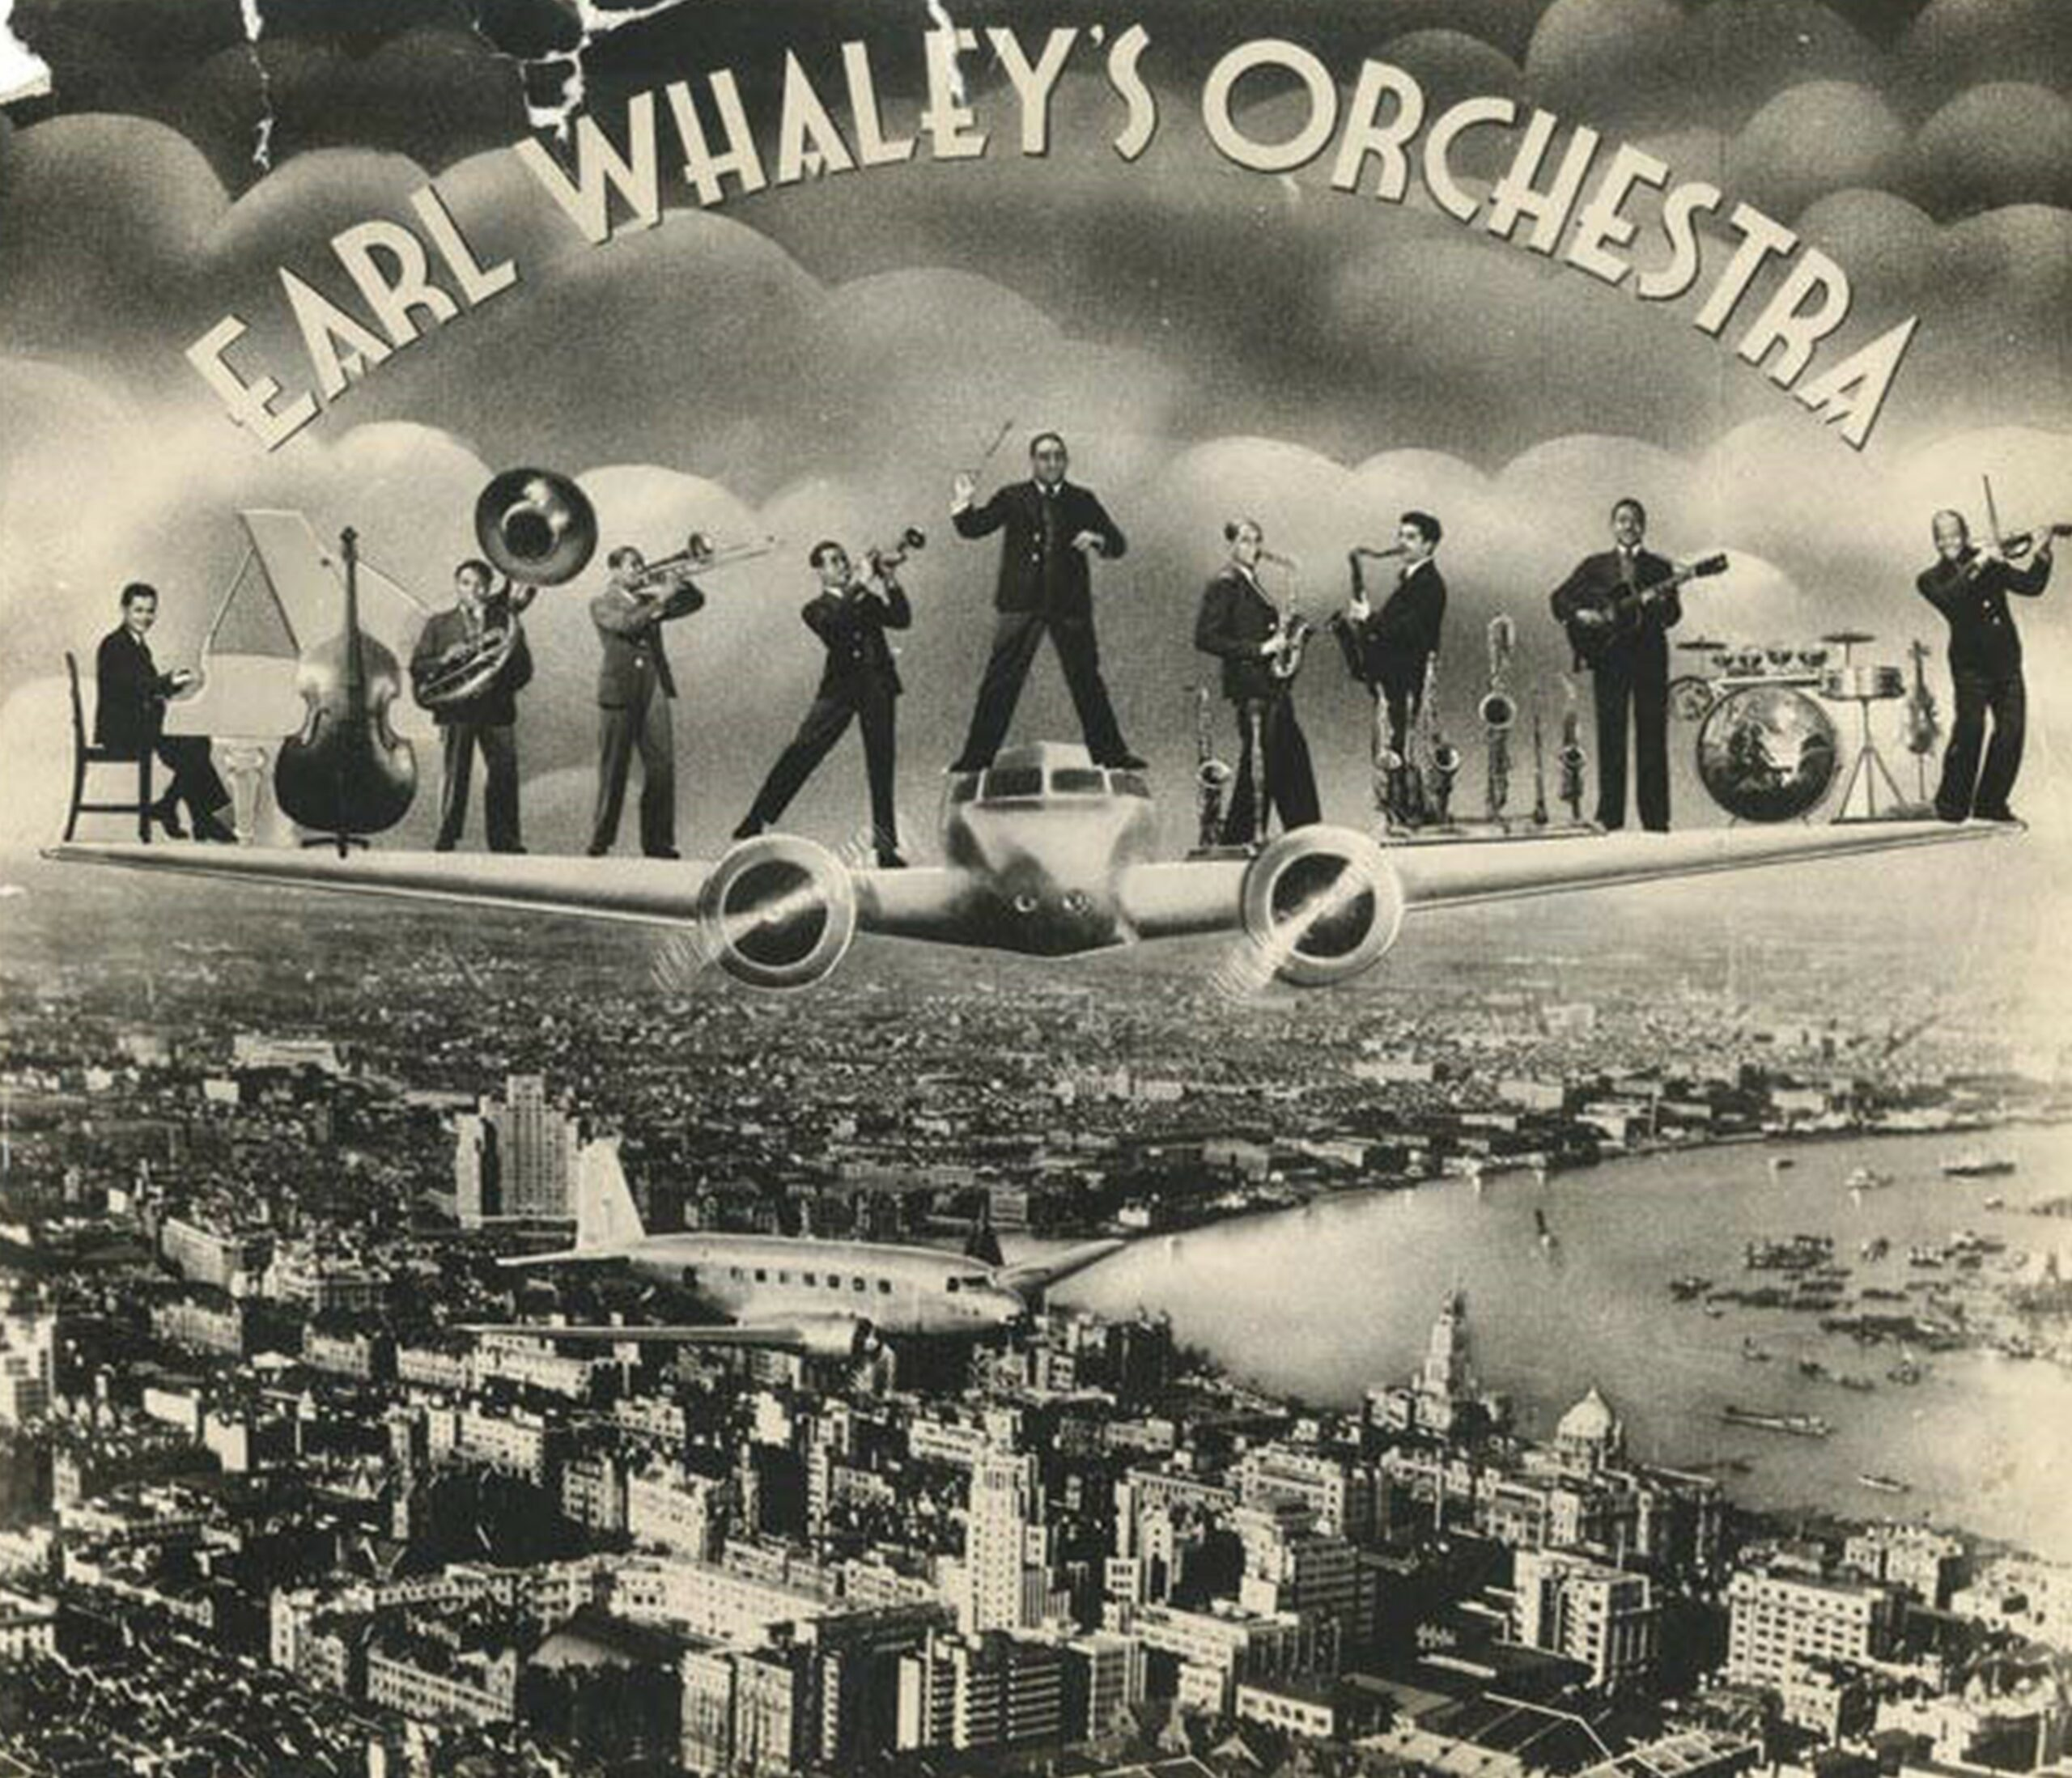 Earl Whaley's Orchestra Over Shanghai, ca 1937